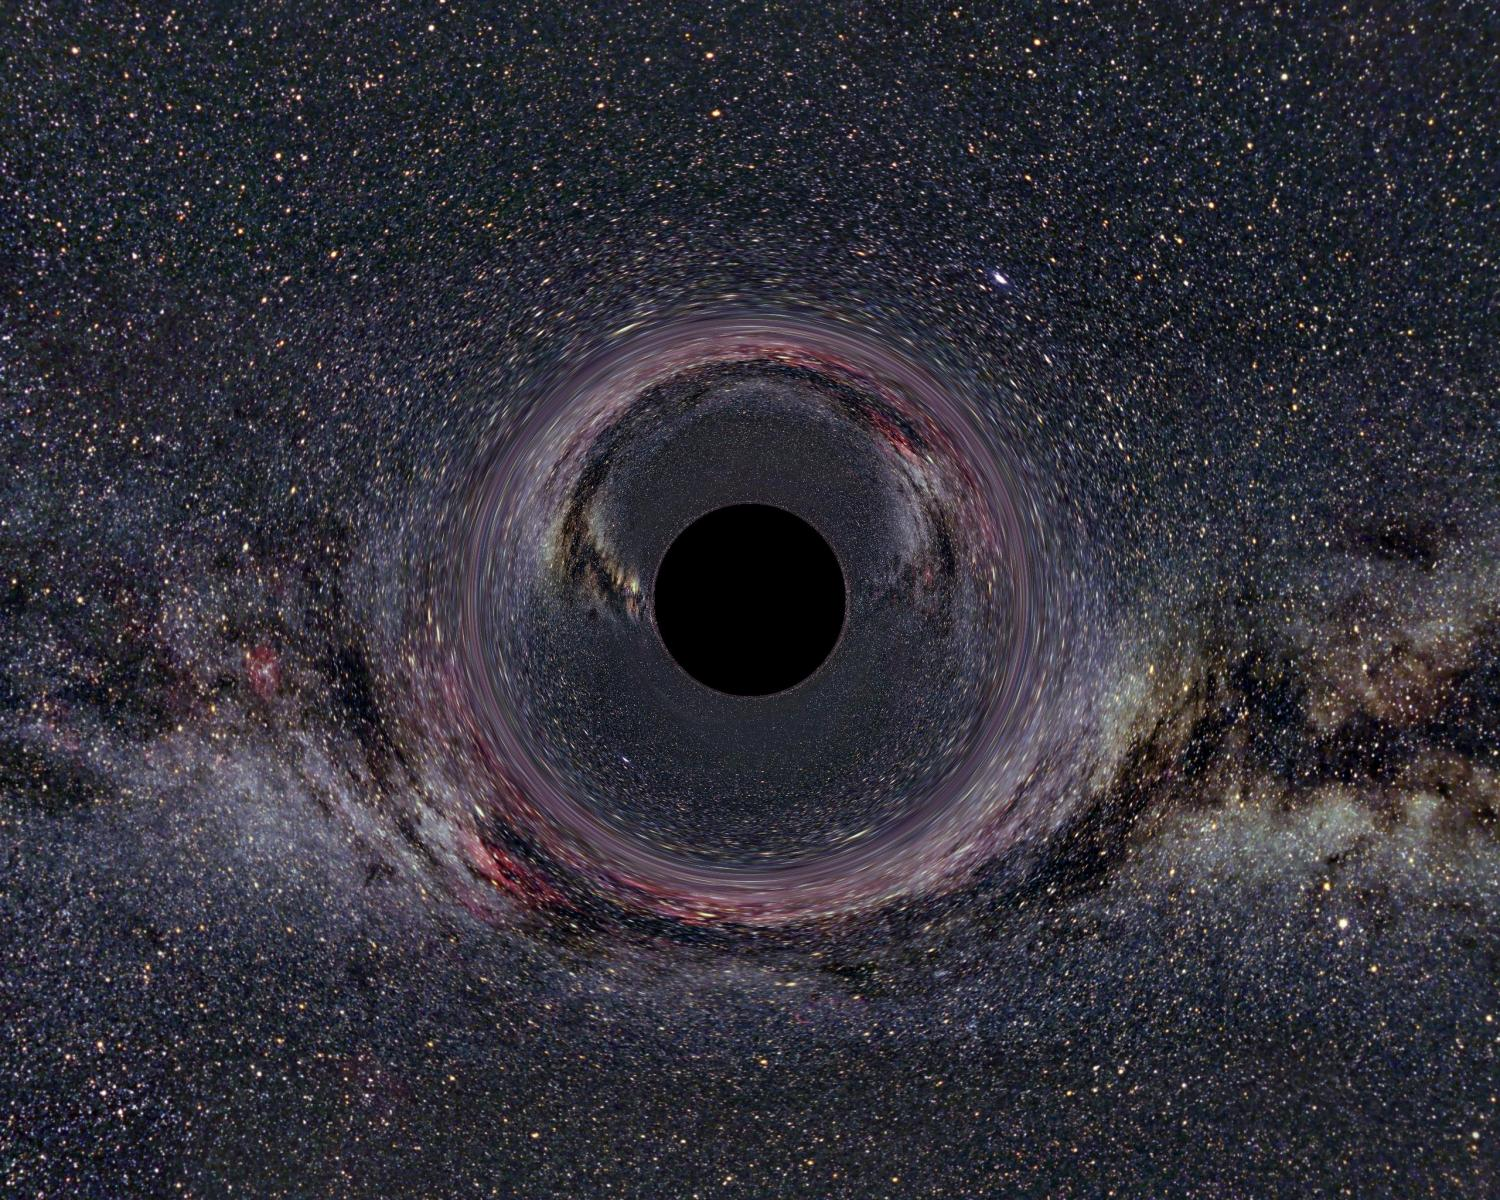 golden anniversary of black hole singularity milkyway black hole credit ute kraus universitatildecurrent hildesheim